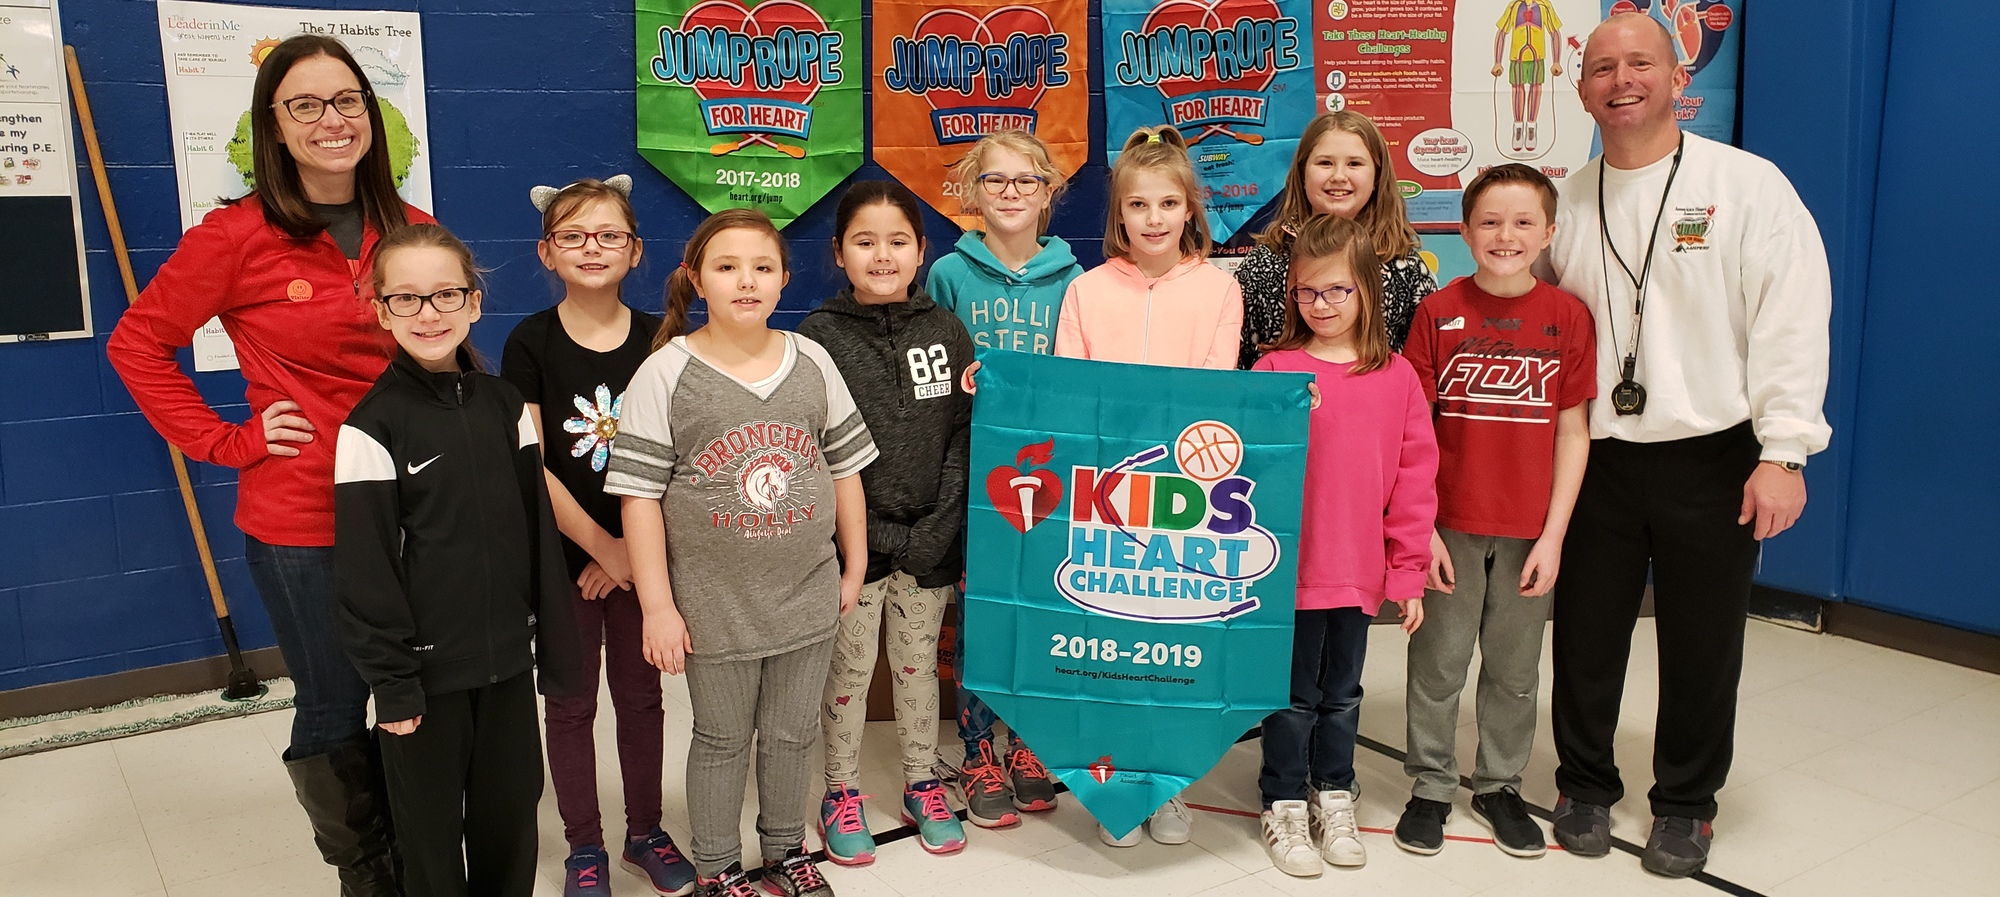 Students with Jump Rope for Heart banner